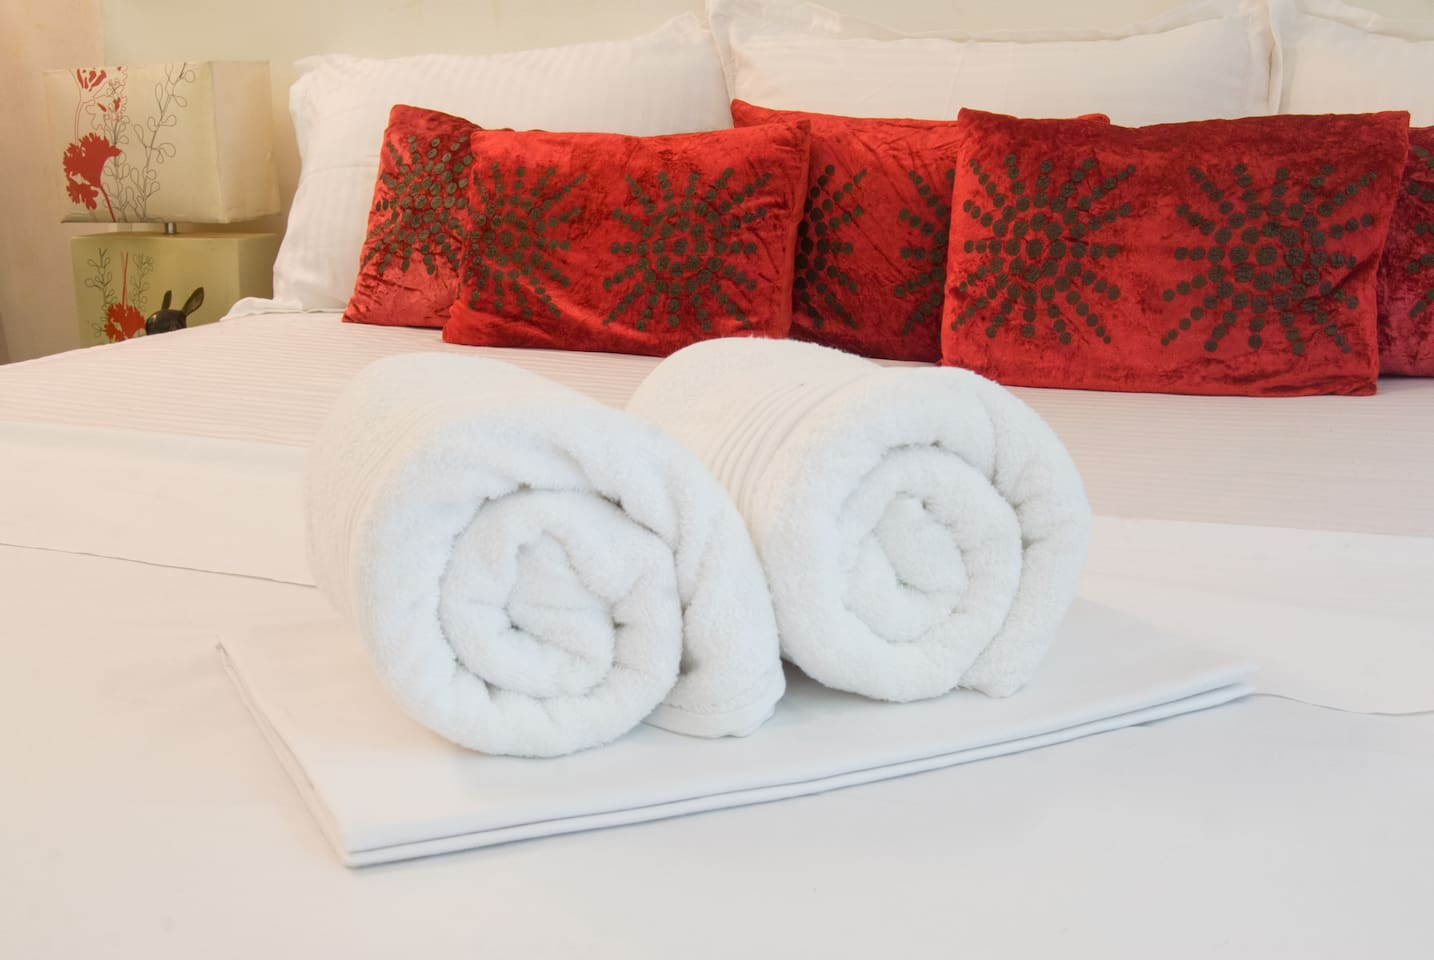 Fresh bedsheets & towels,red cushions-color of Love & passion spread cheer.7ft x6ft kingsize bed